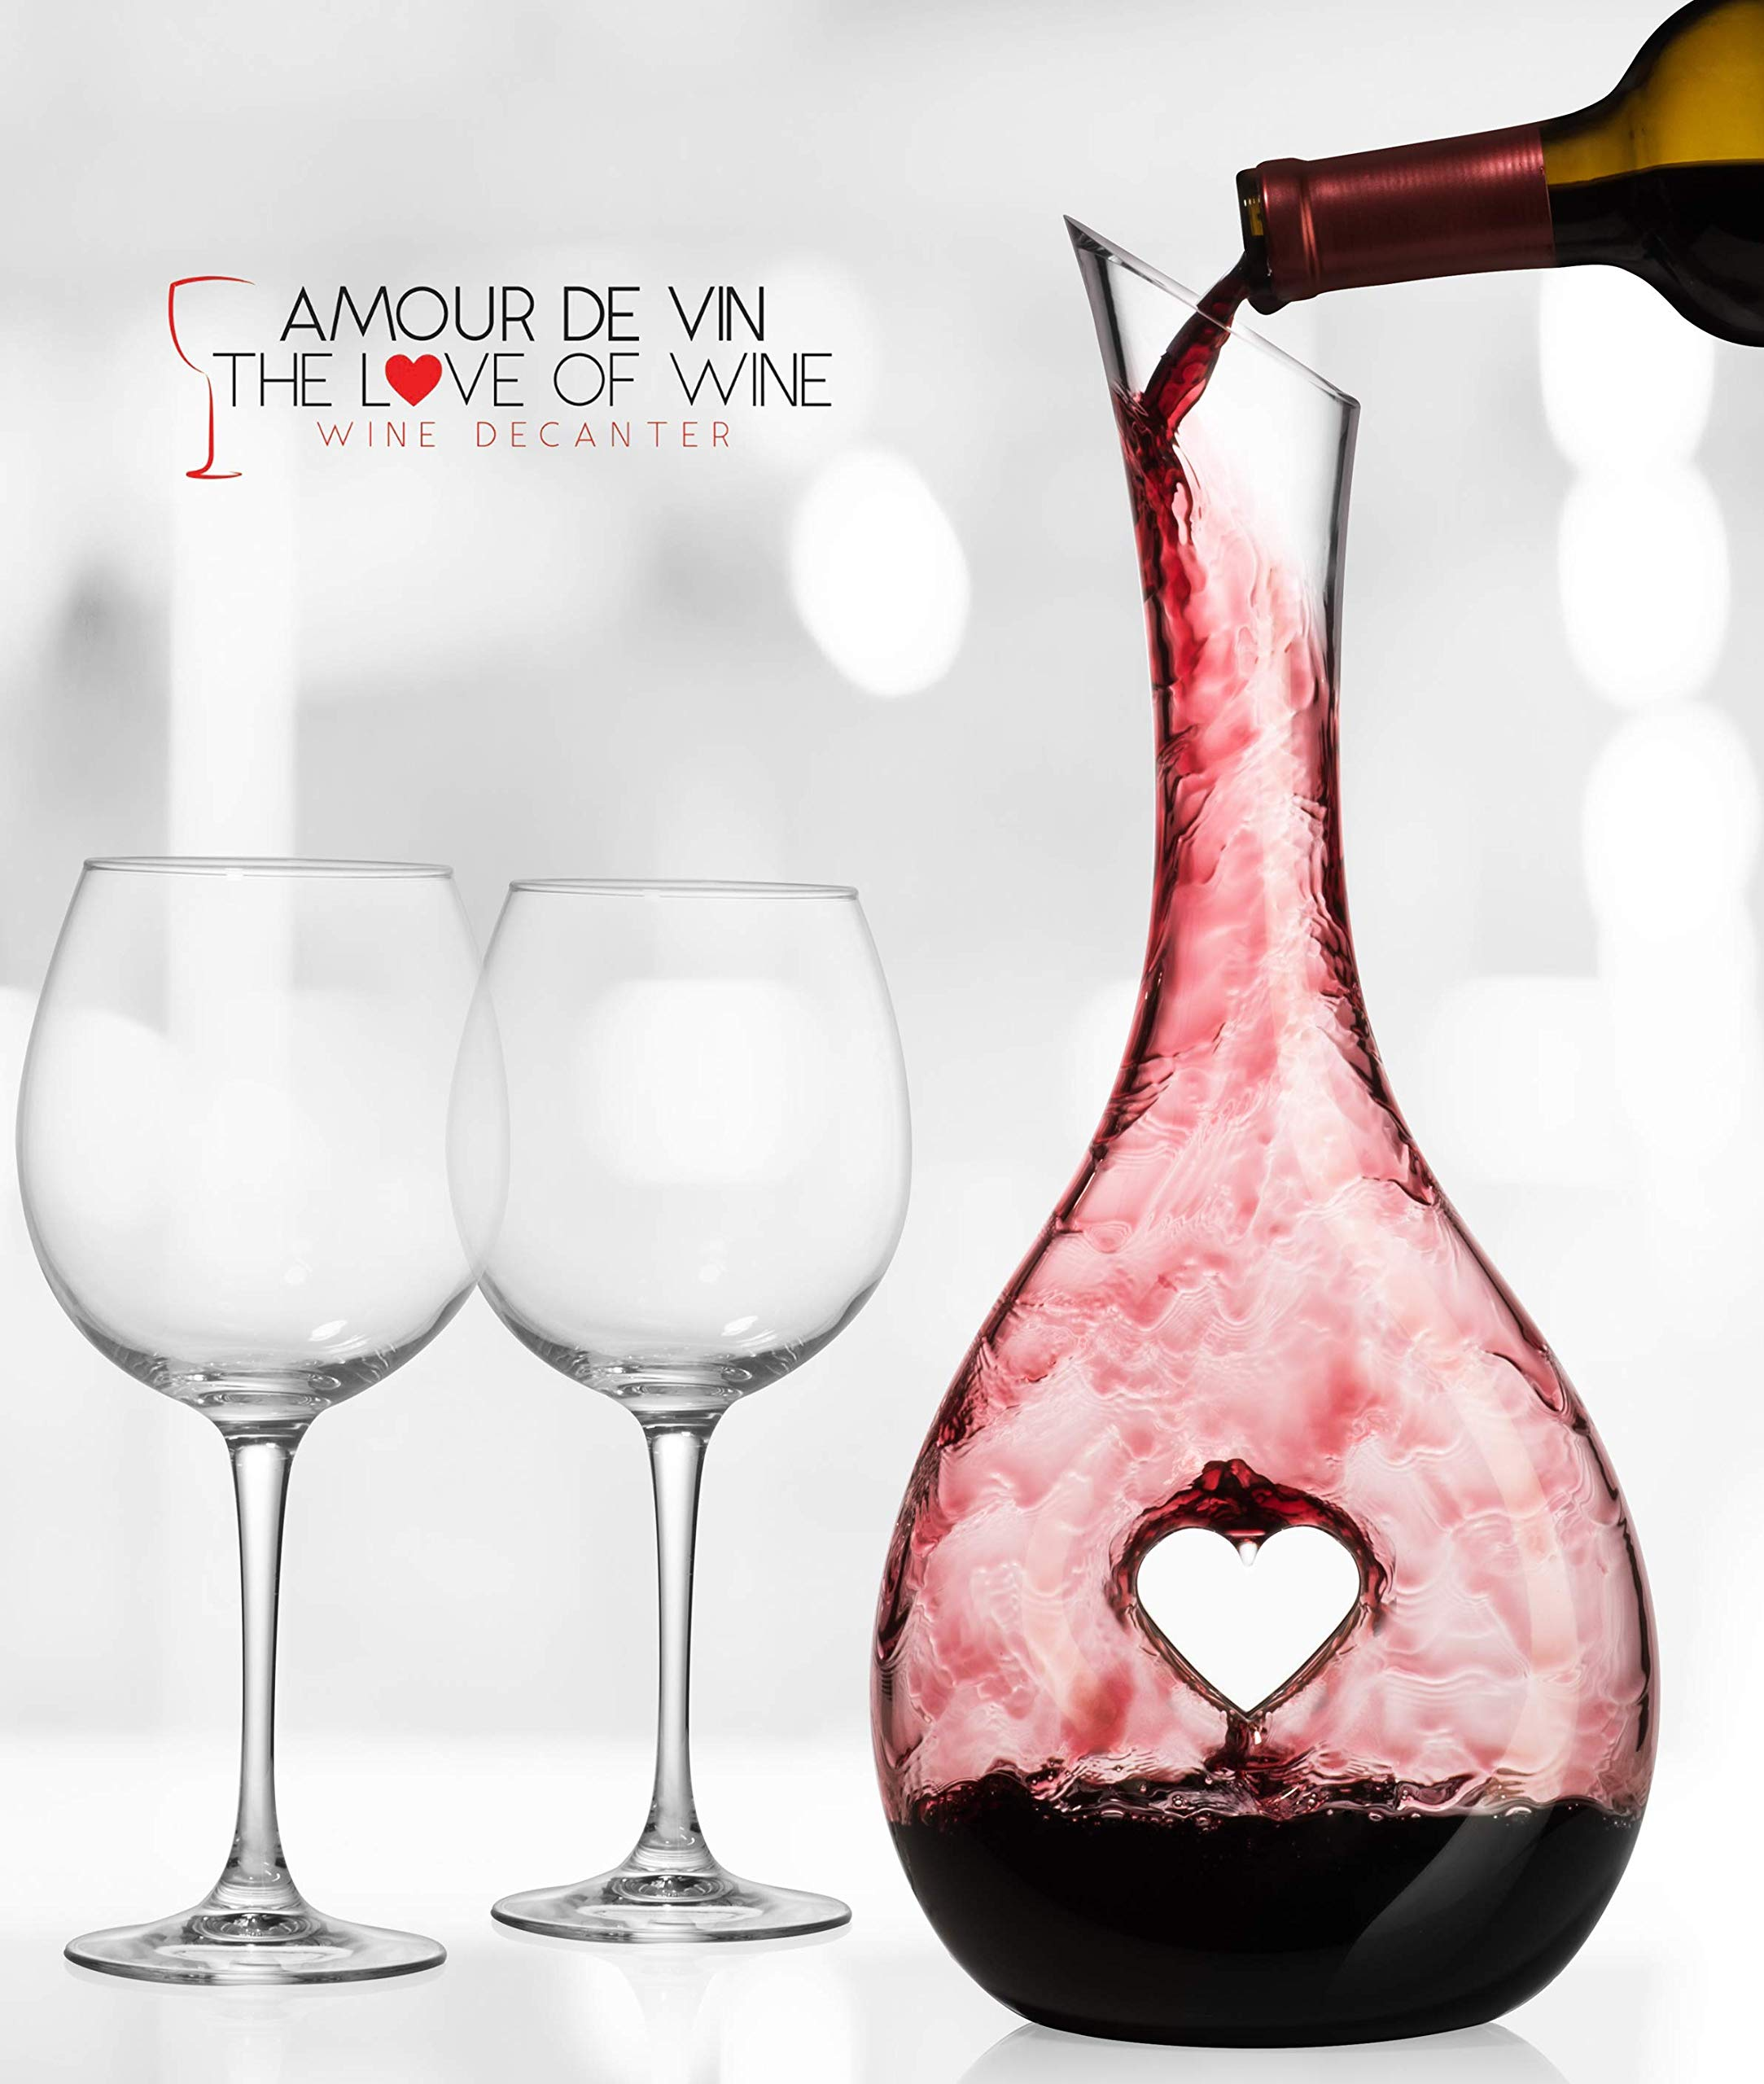 Heart Shaped Wine Decanter - Amour De Vin - 100% Hand Blown Lead-free Crystal Glass, Red Wine Carafe, Wine Gift, Wine Accessories, Wine Aerator